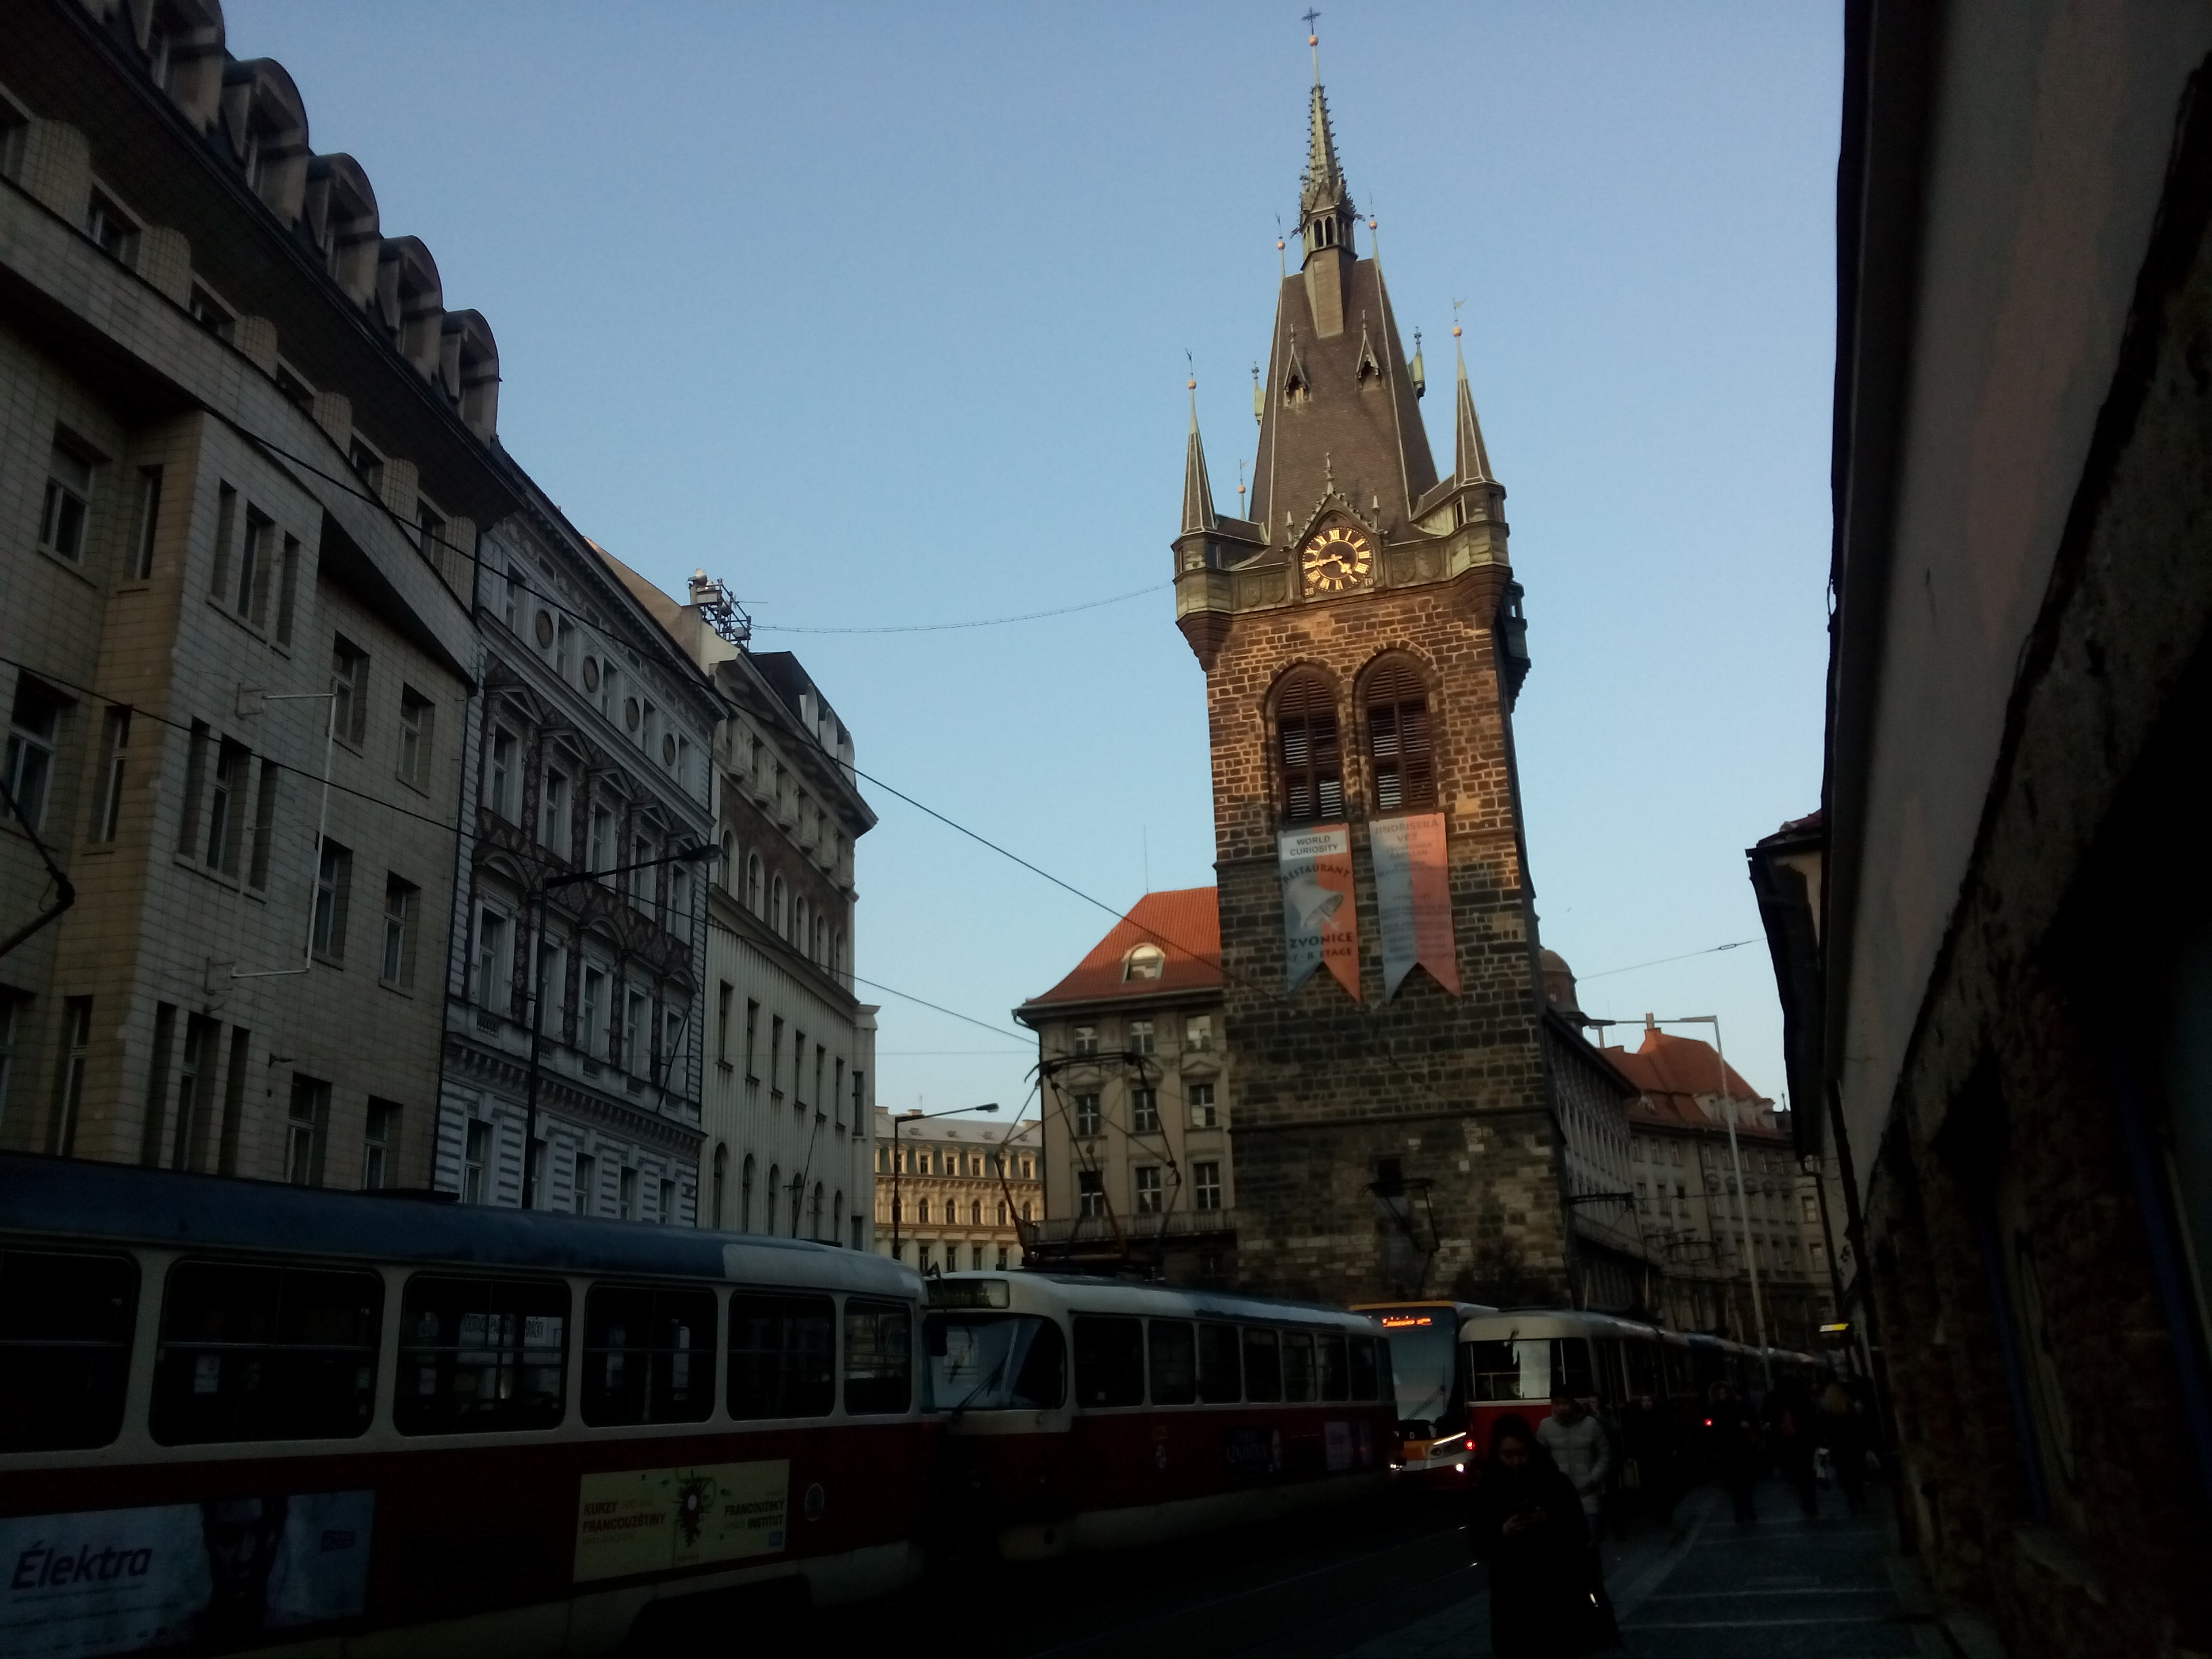 Against a blue sky, a dark brown brick church with a gothic black spire, and a tram passing in the foreground